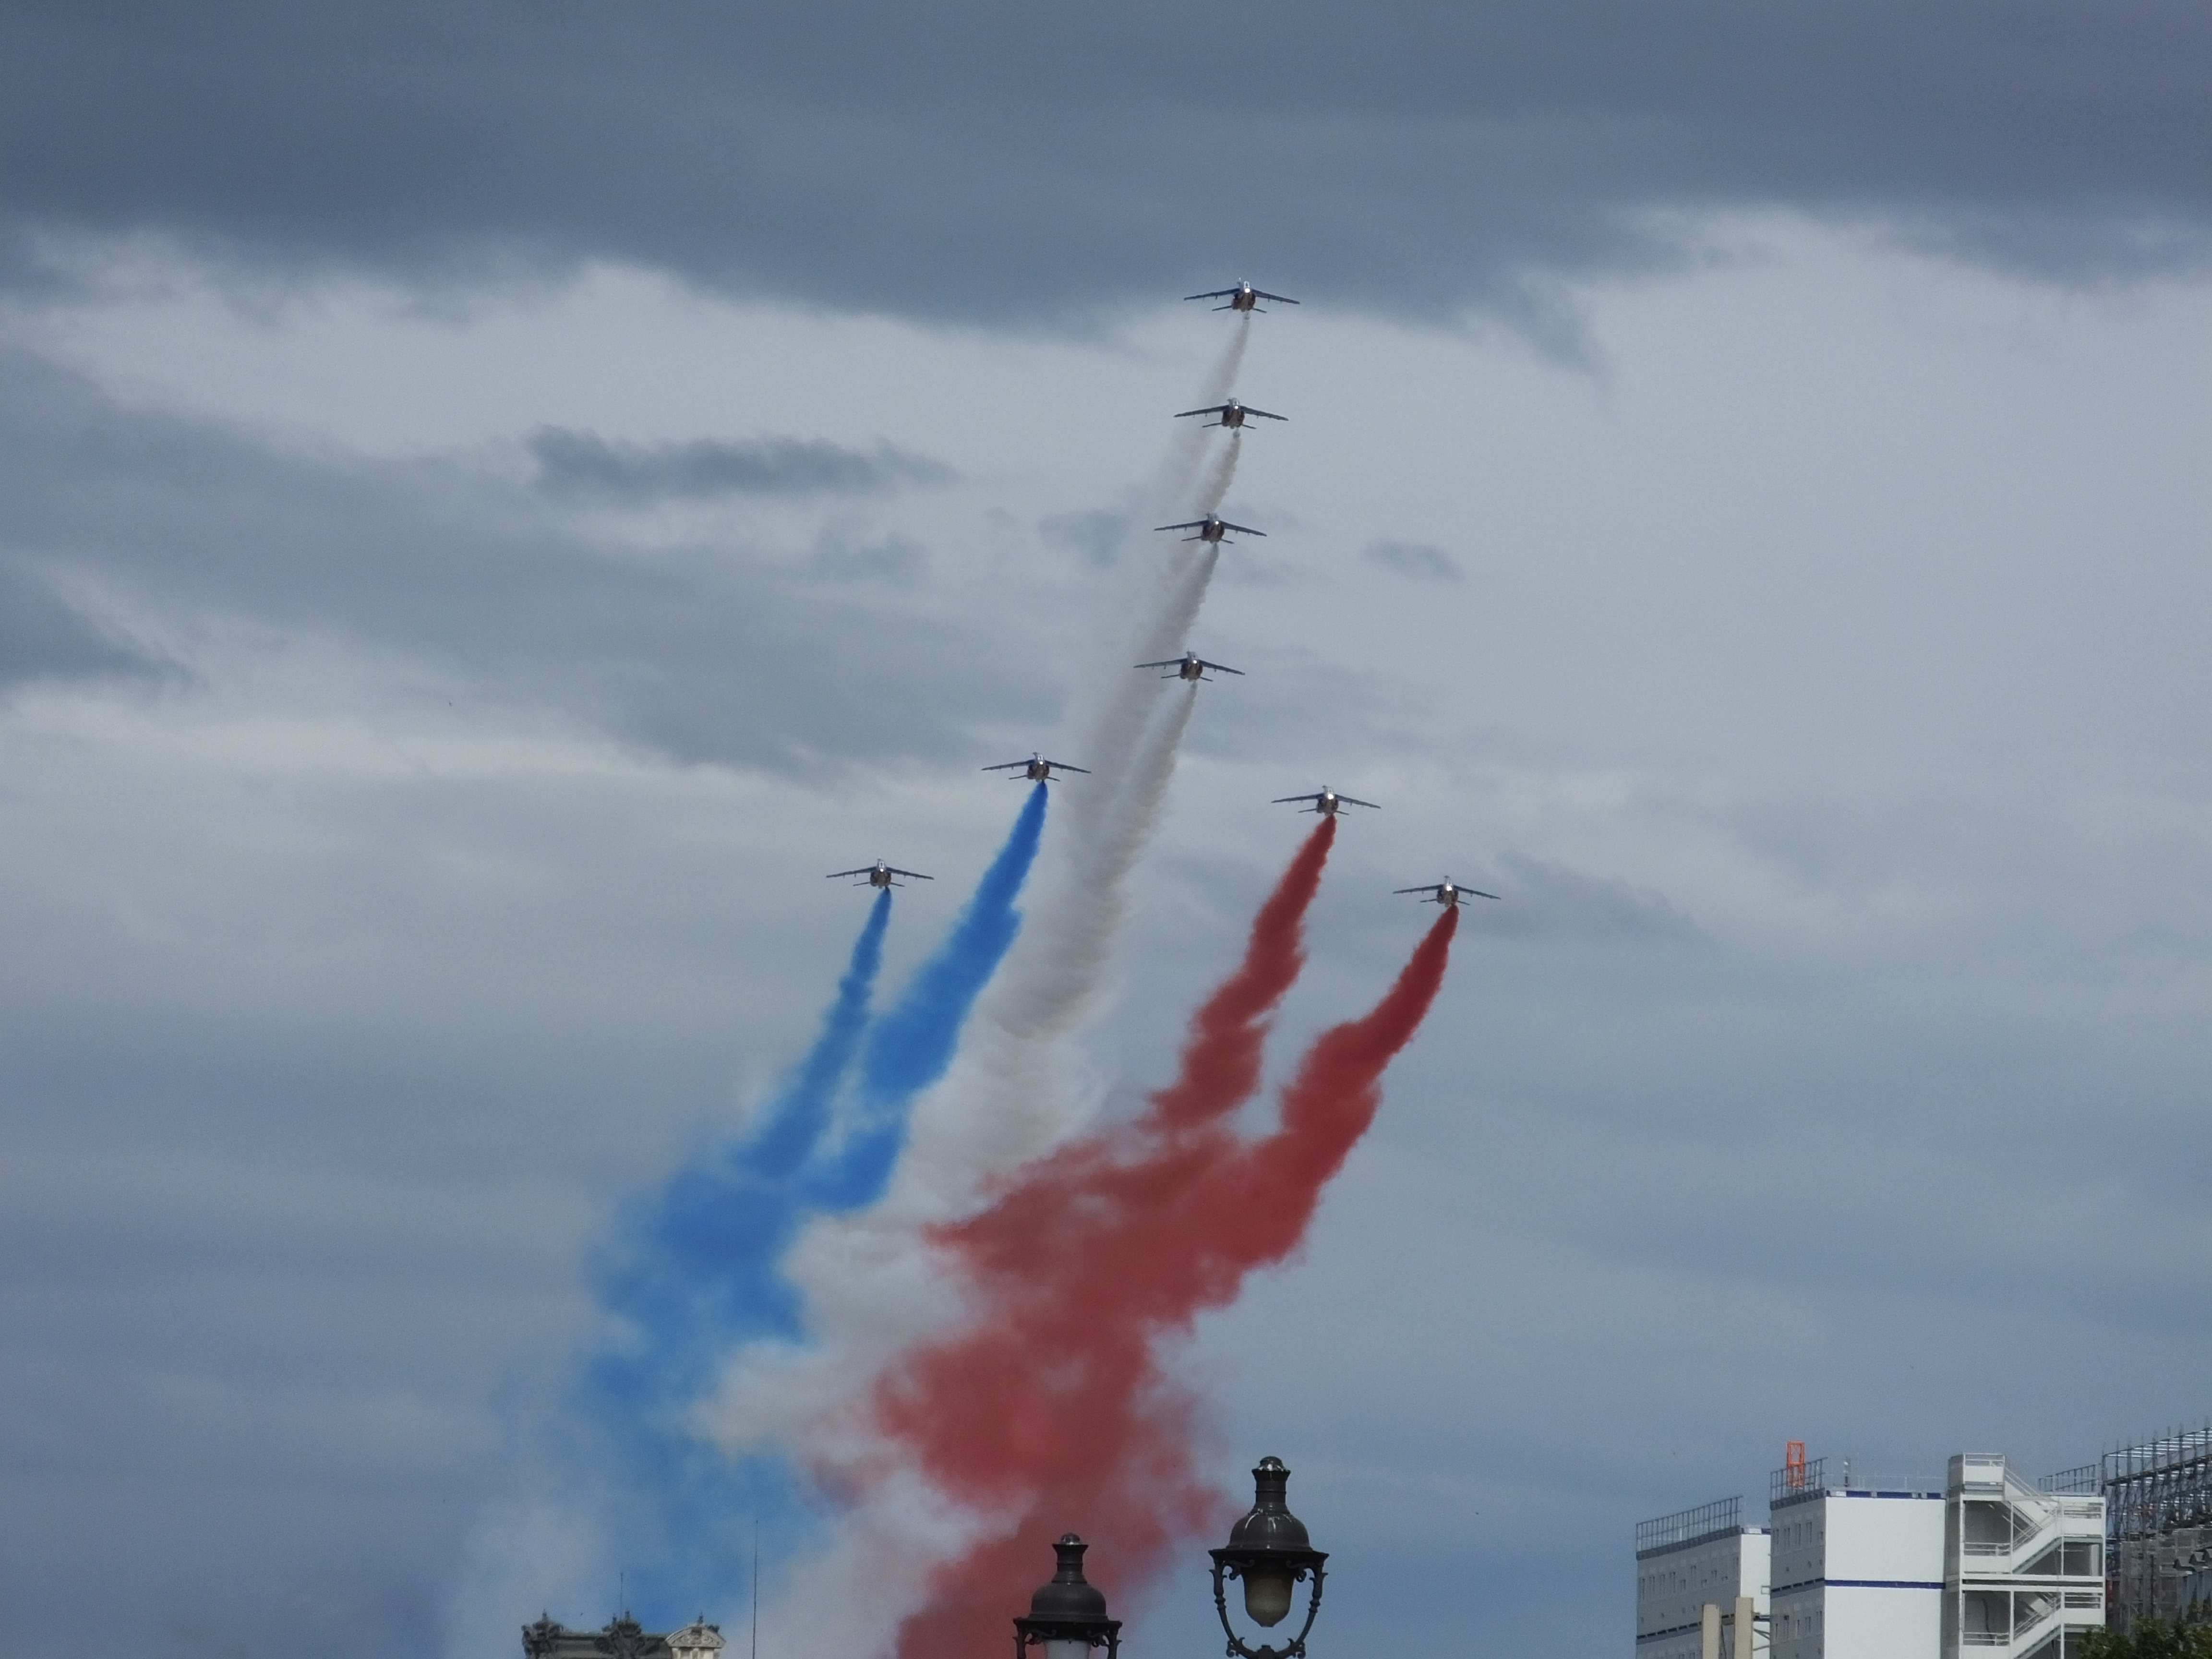 The Bleu-blanc-rouge fly-by